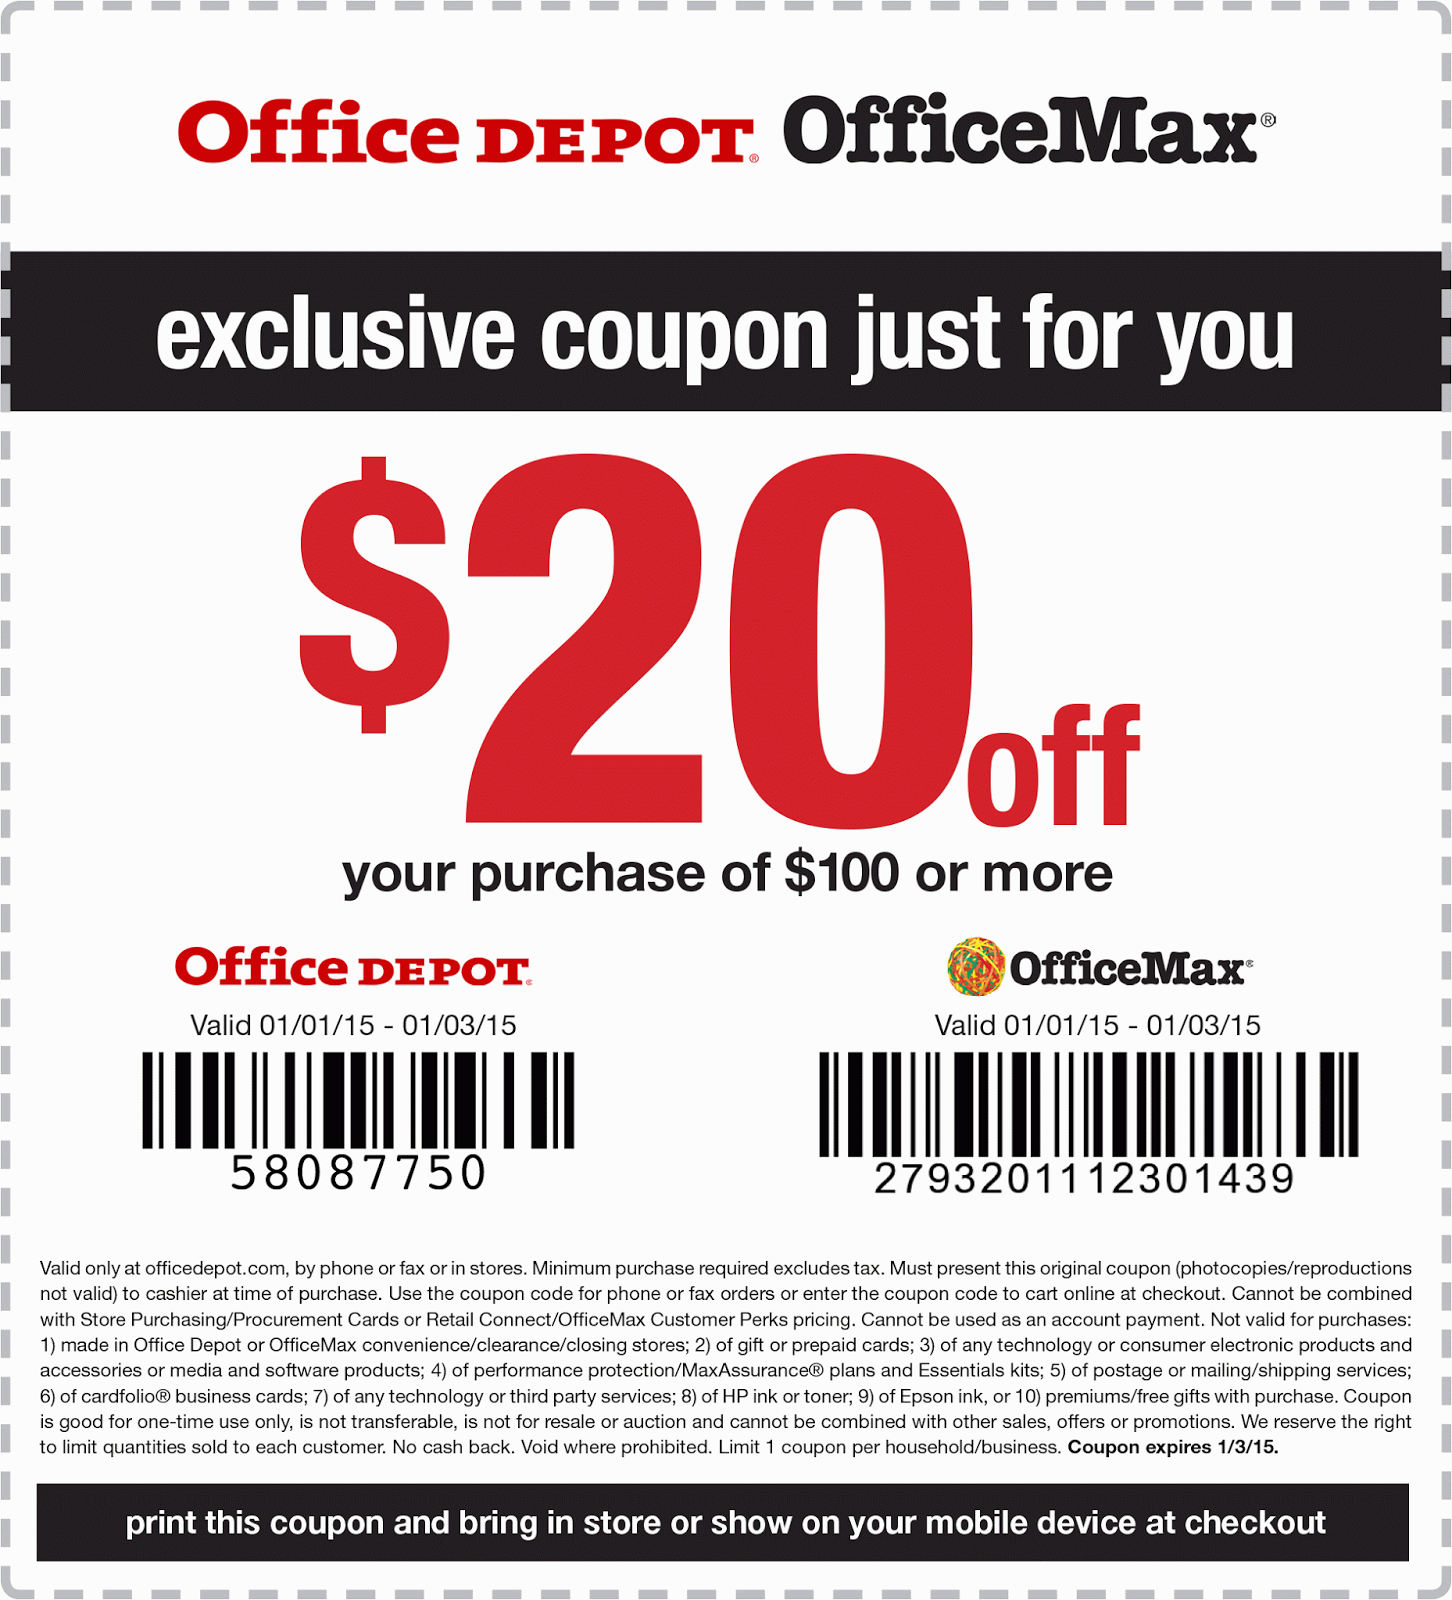 All Active Office Depot Promo Codes & Coupons - Up To 50% off in December Office Depot is one of the biggest office supply stores in all of North America. Get free delivery on all qualifying orders and shop for ink, toner, paper, envelopes, office furniture and more.5/5(1).